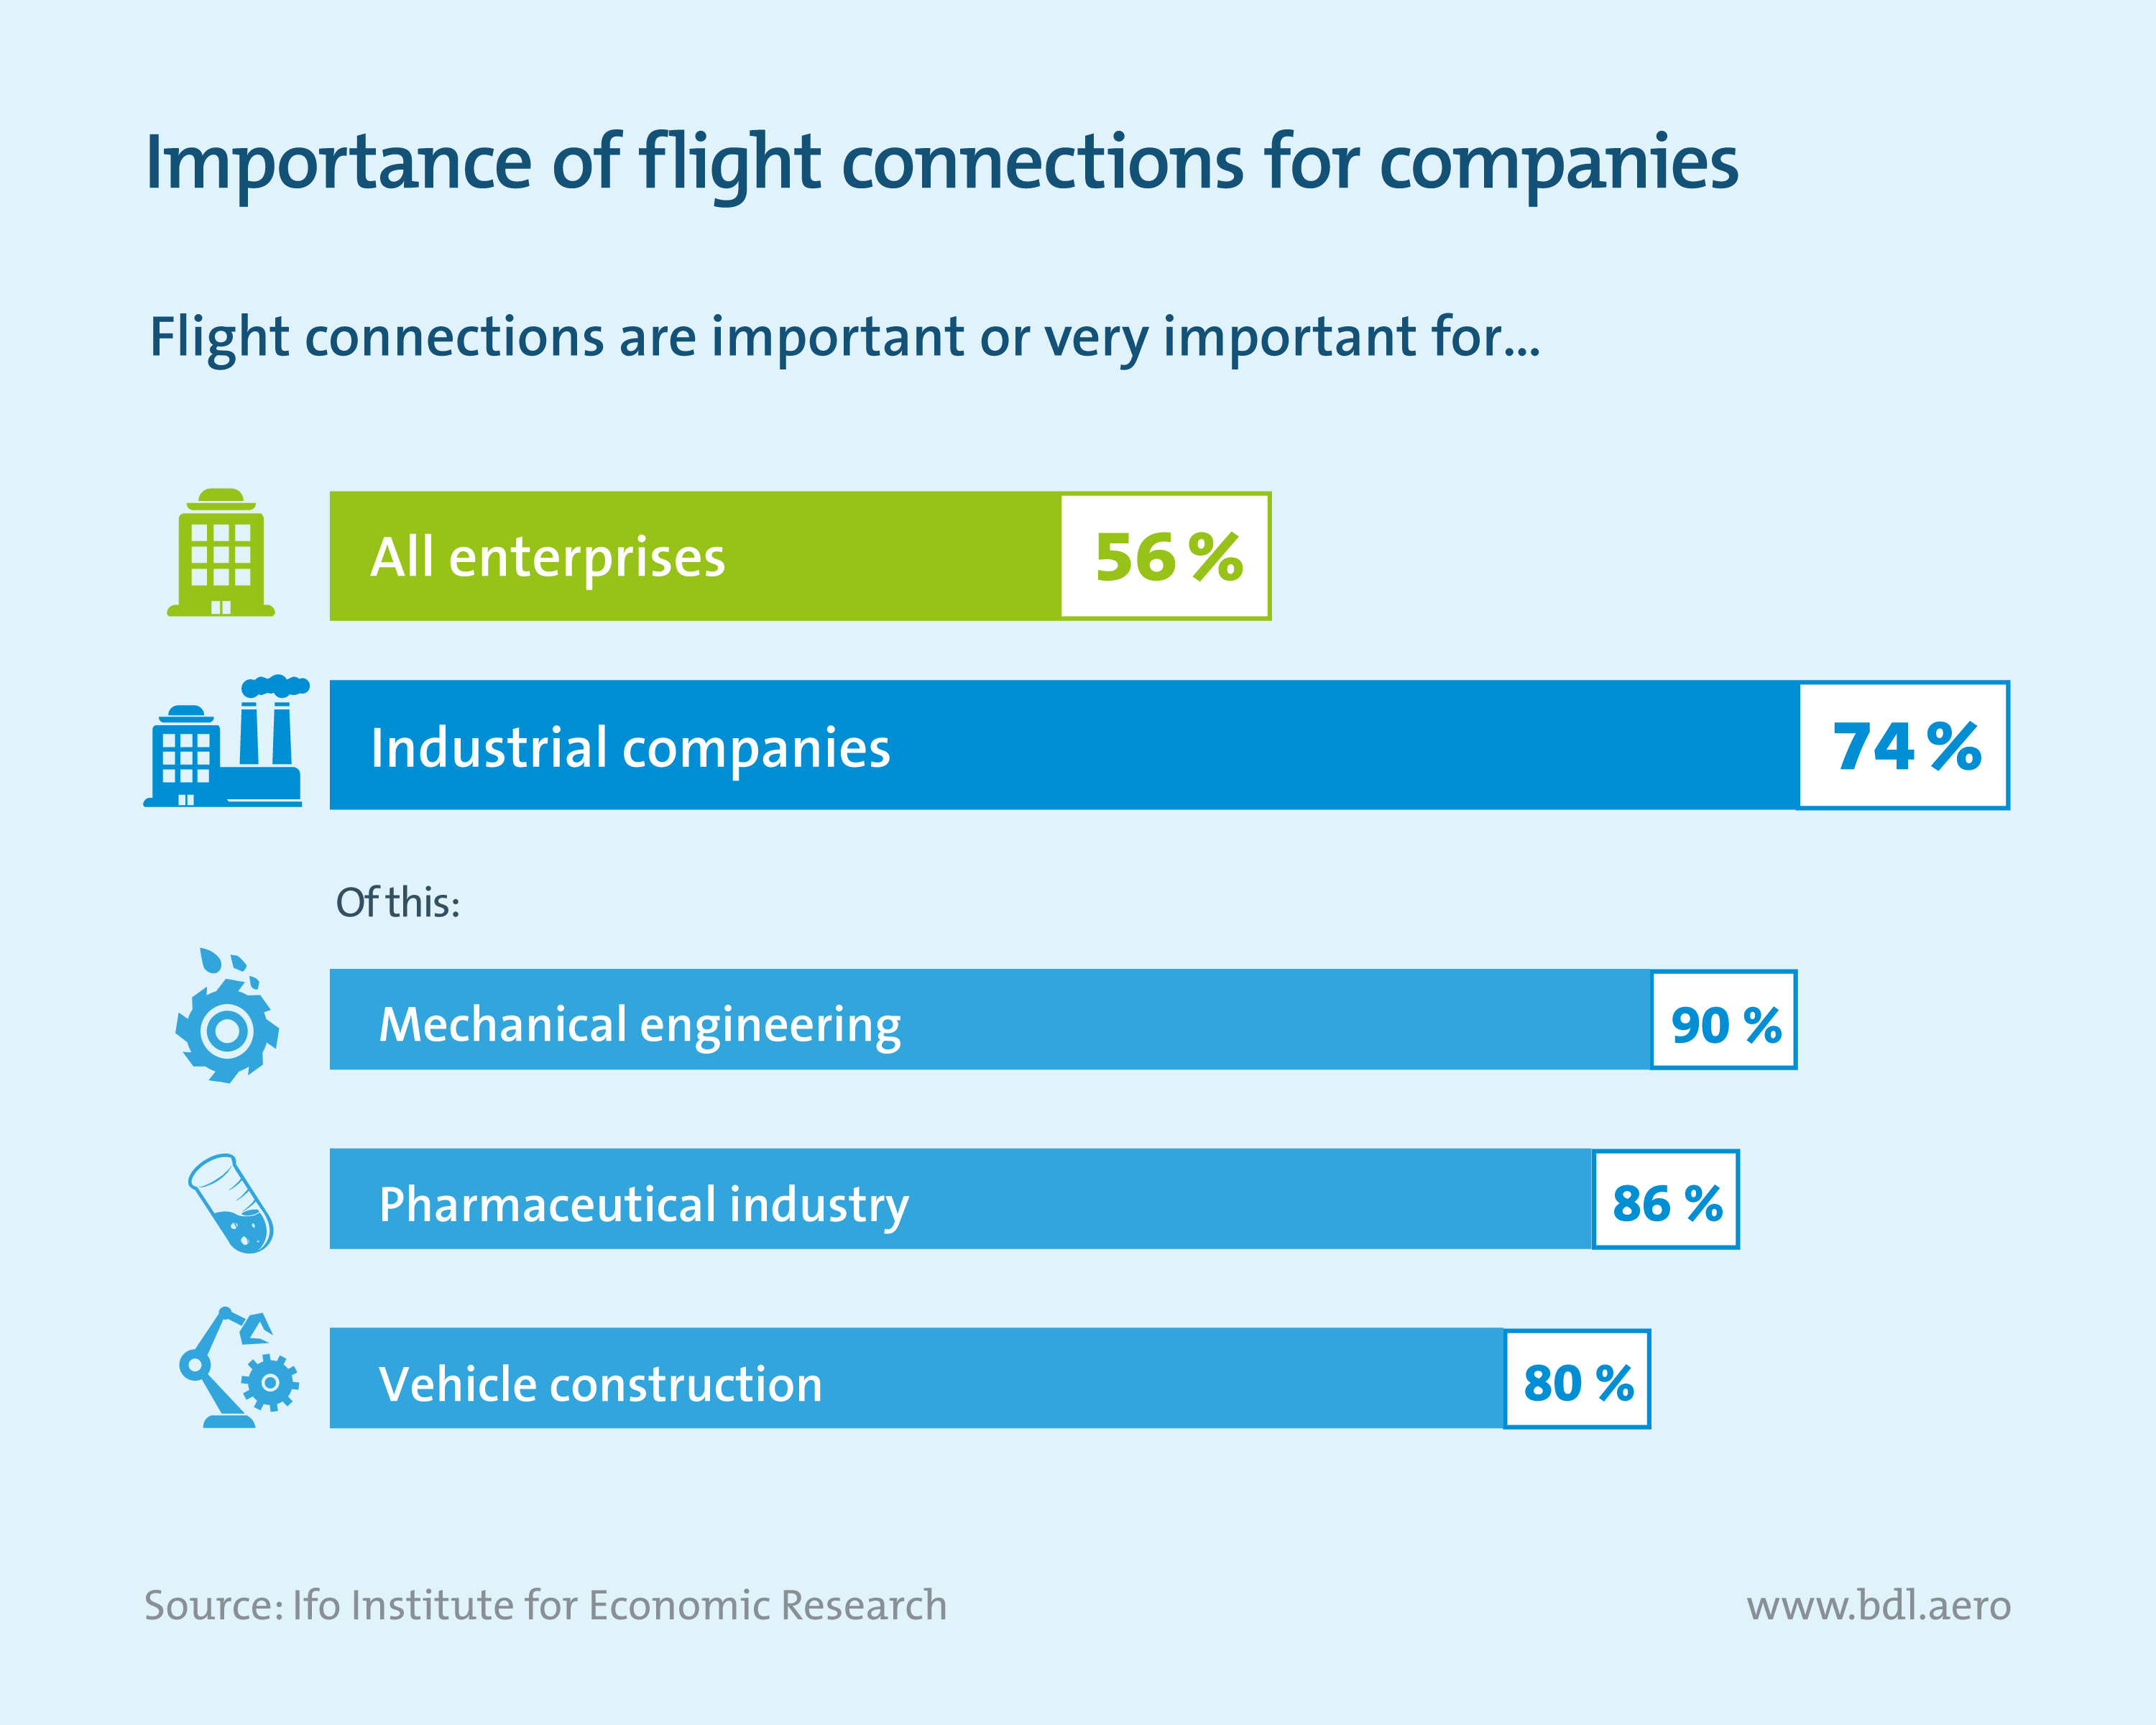 importance-of-flight-connections-for-companies